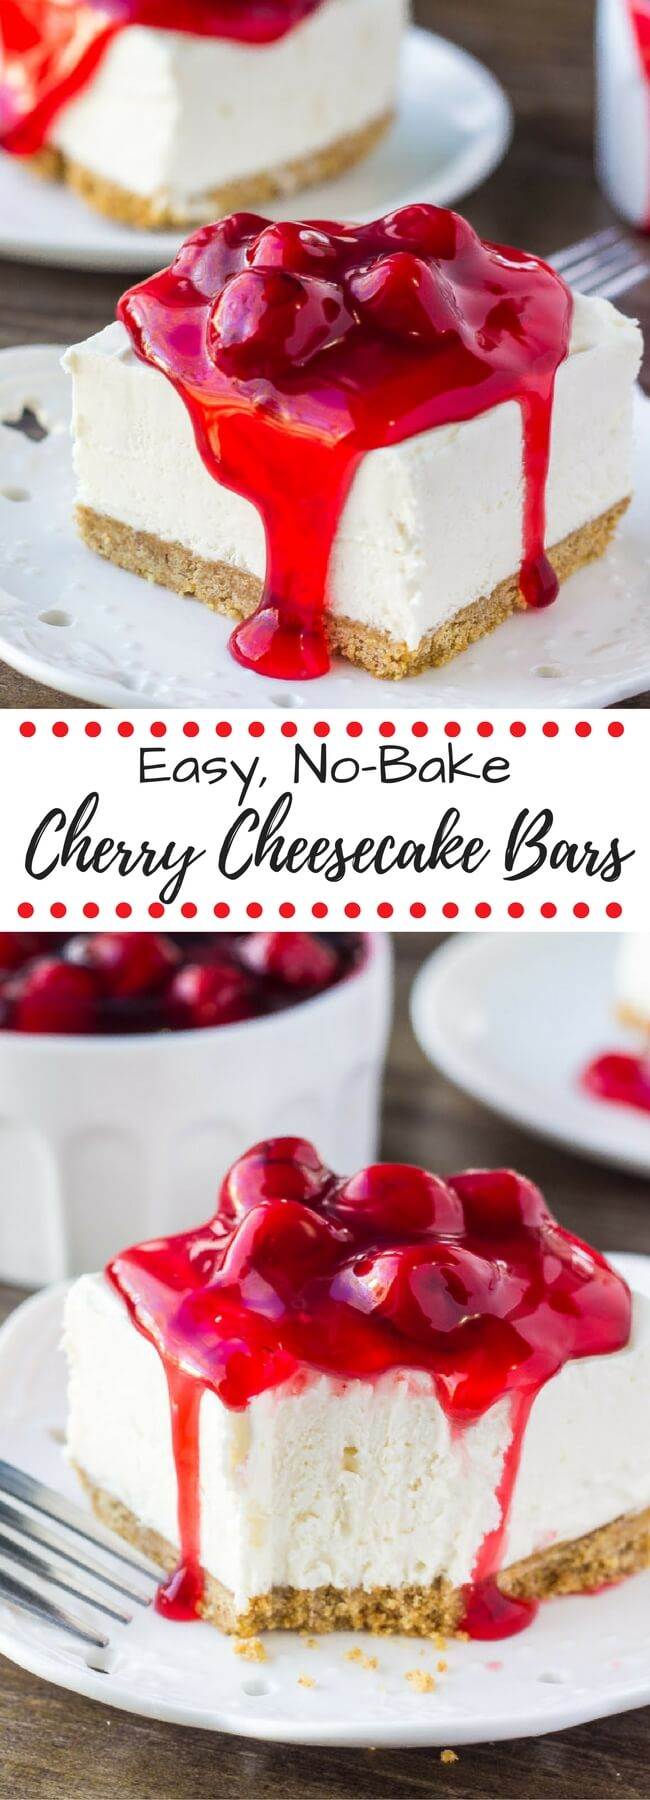 No Bake Cherry Cheesecake Bars Just So Tasty